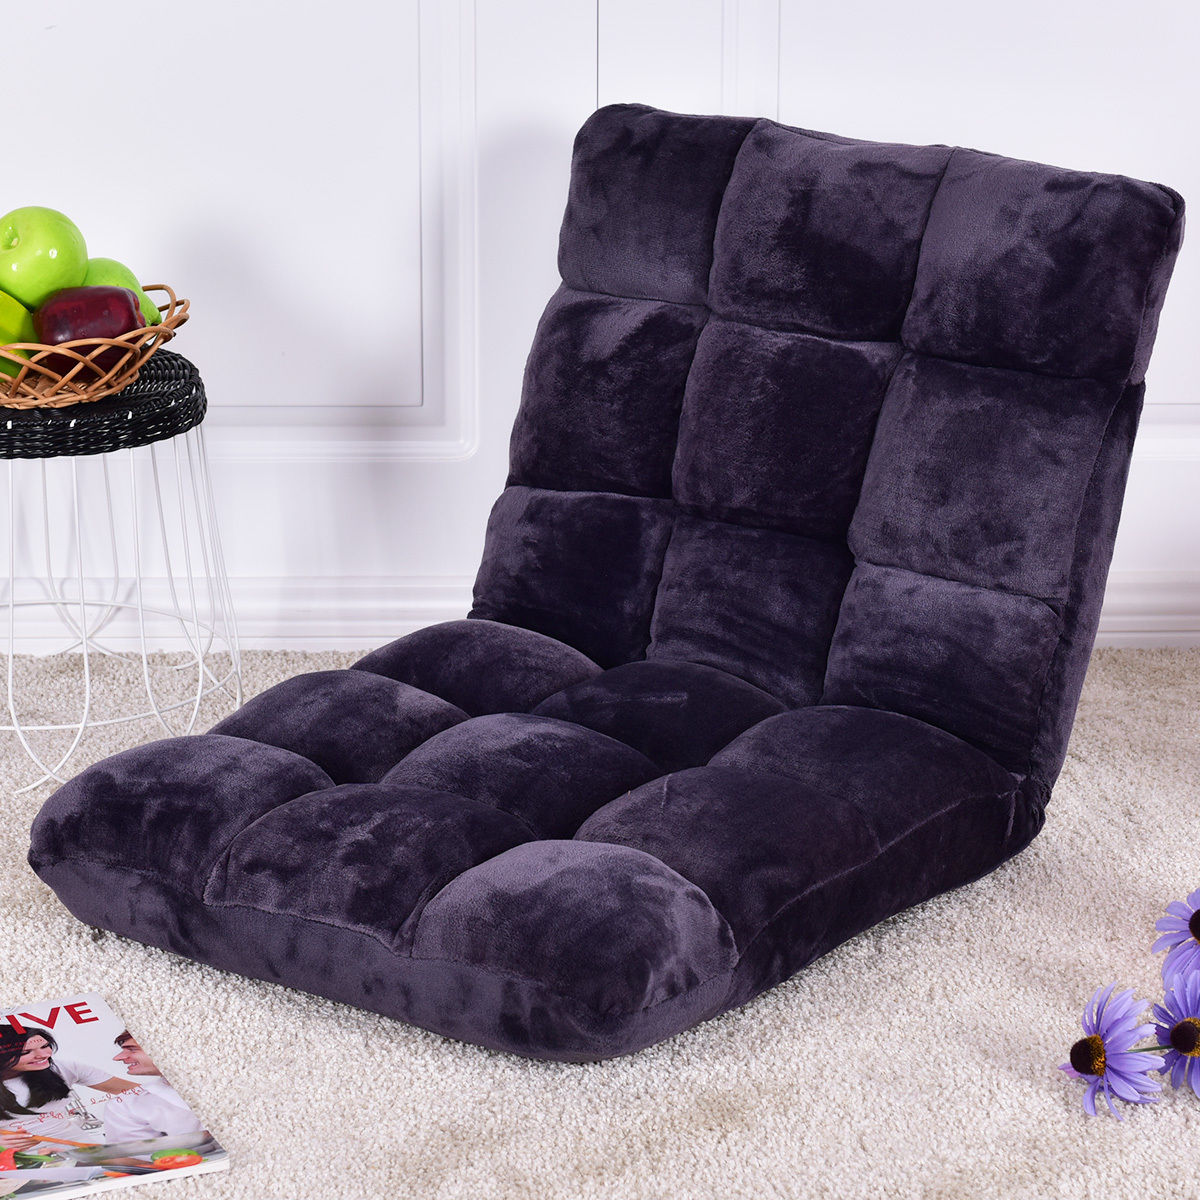 Giantex Modern Floor Folding Sofa Chair Lounger 5 Positon Adjustable Sleeper Bed Couch Soft Flannel Recliner  HW55460GR high quality folding sofa bed living room furniture lounge chair lazy sofa relaxing window corner sofa folding floor chair